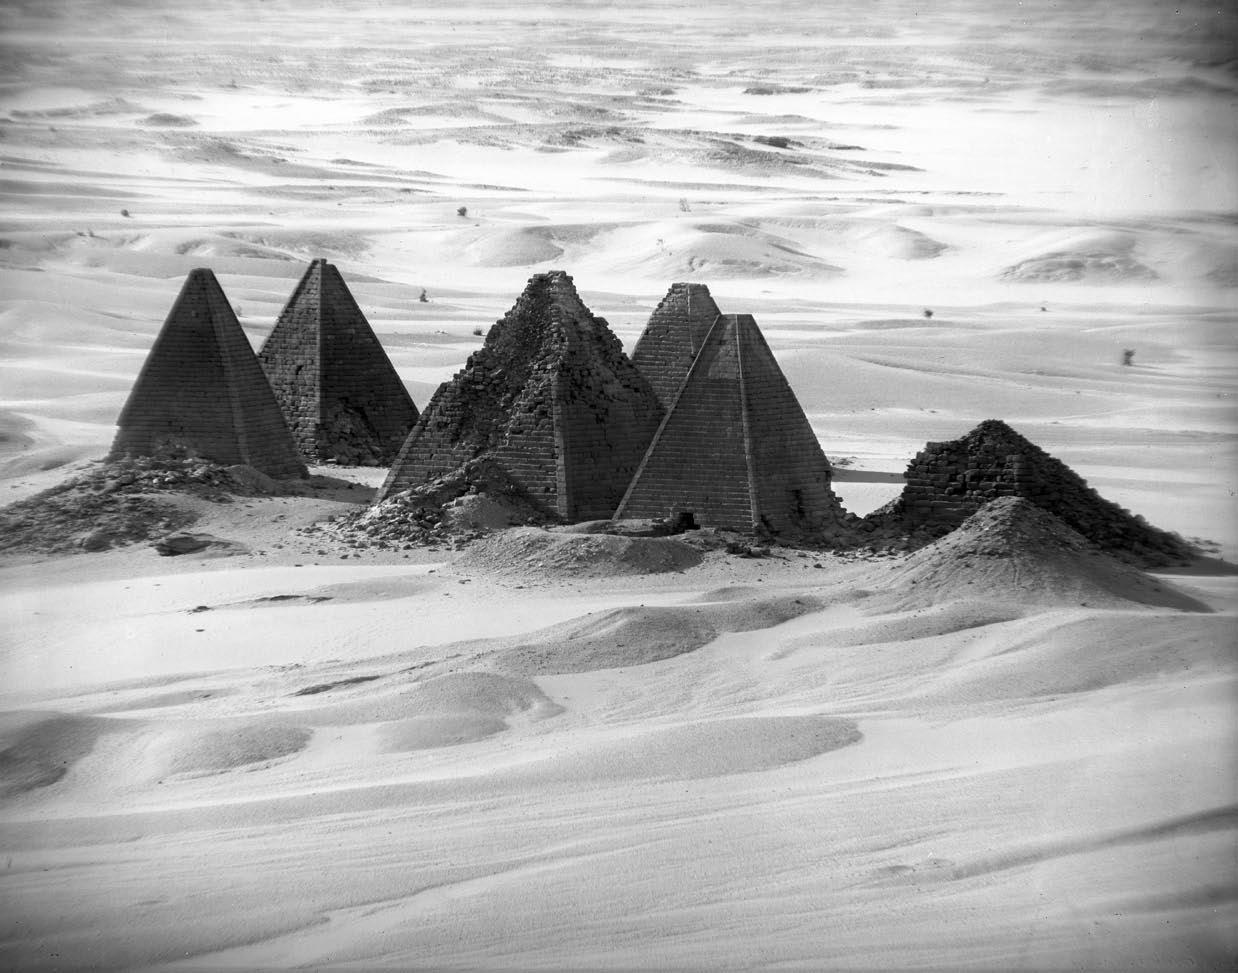 "BIRD'S-EYE VIEW OF PYRAMIDS FROM THE SUMMIT OF GEBEL BARKAL     In 1919, James Henry Breasted would be one of the first scholars to appreciate the use of aerial photography as an aid to archaeology. In 1906, without benefit of an airplane or a hot-air balloon, the height of nearby Gebel Barkal was the perfect vantage point for photographing the pyramids of Napata. This image was taken through a telephoto lens. It has been suggested that the steeper angle of the Nubian pyramids, when compared with the better-known Egyptian pyramids on the Giza Plateau, is the result of the angle of the sun's rays closer to the equator .  SUDAN: Gebel Barkal (Napata) December 1906 Photograph by Horst Schliephack From original 8"" x 10"" glass plate negative Oriental Institute photograph P. 3049   Image and words from:  uncertaintimes :    via: chazhuttonsfsm :"